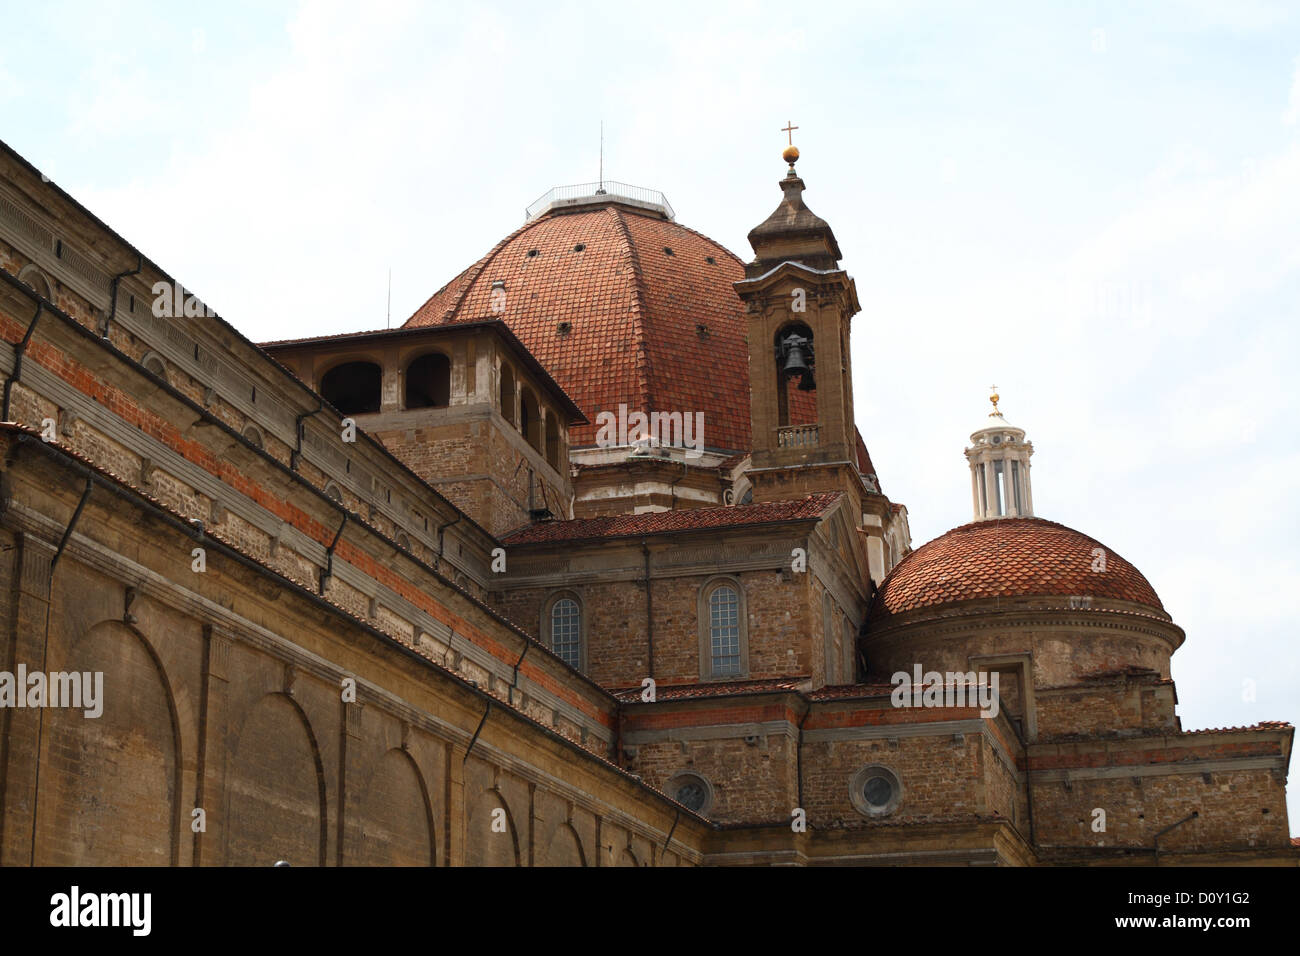 Cupola of a medieval Building in Florence, Tuscany, Italy Stock Photo